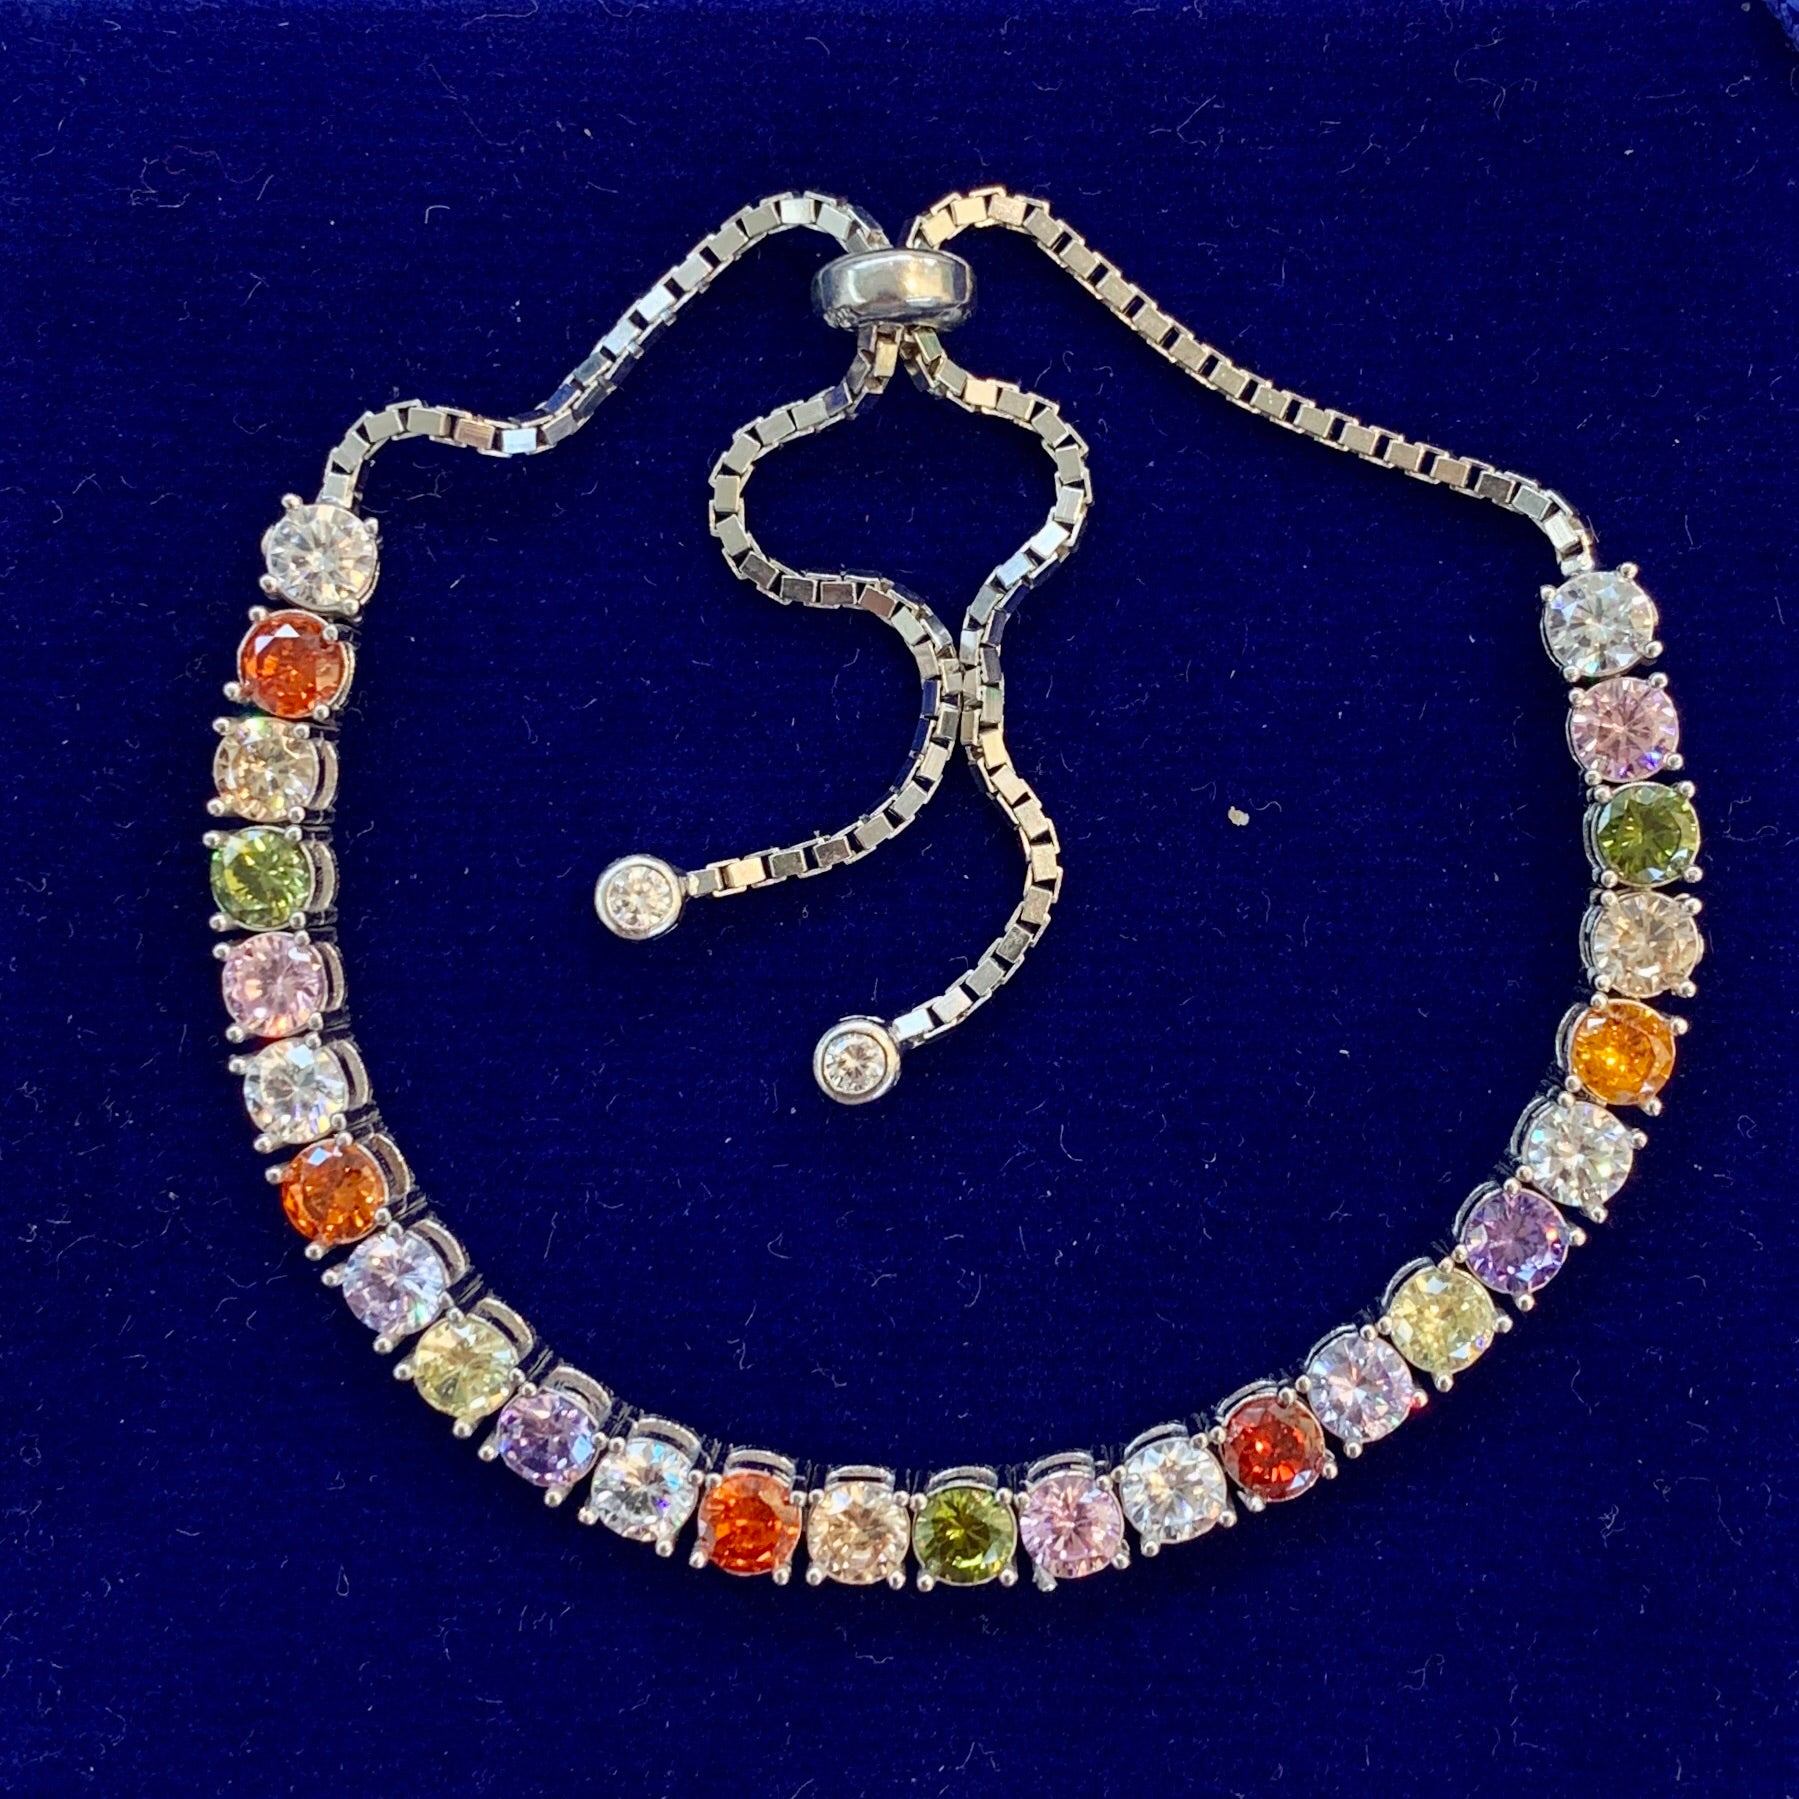 Handmade Multicolor Square Tennis Bracelet